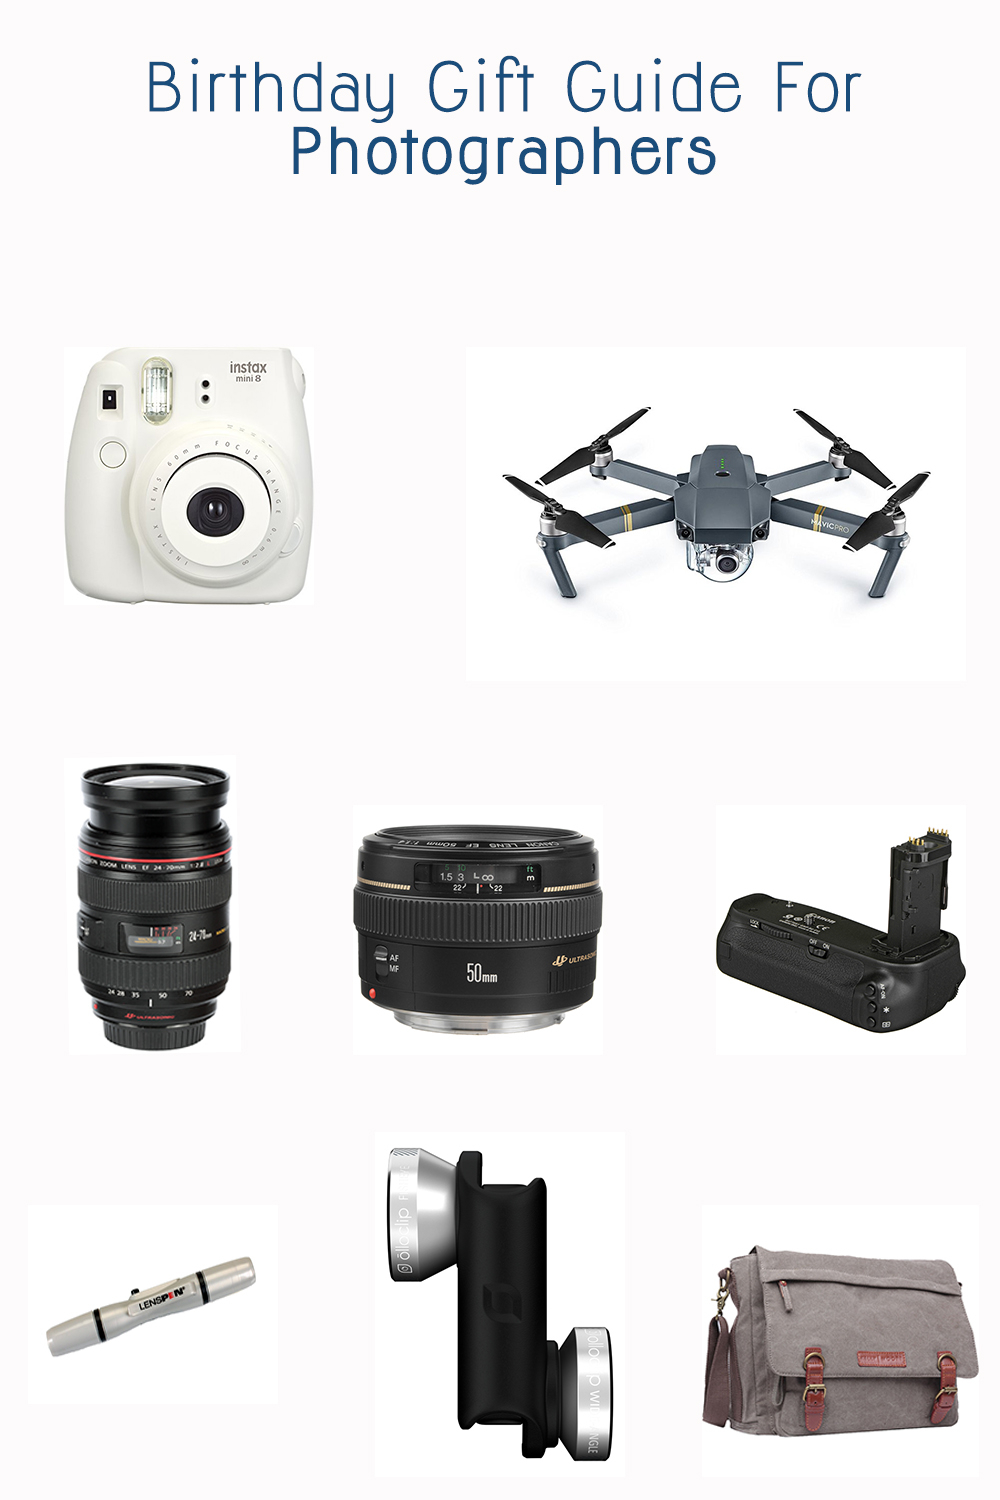 Birthday Gift Guide For Photographers